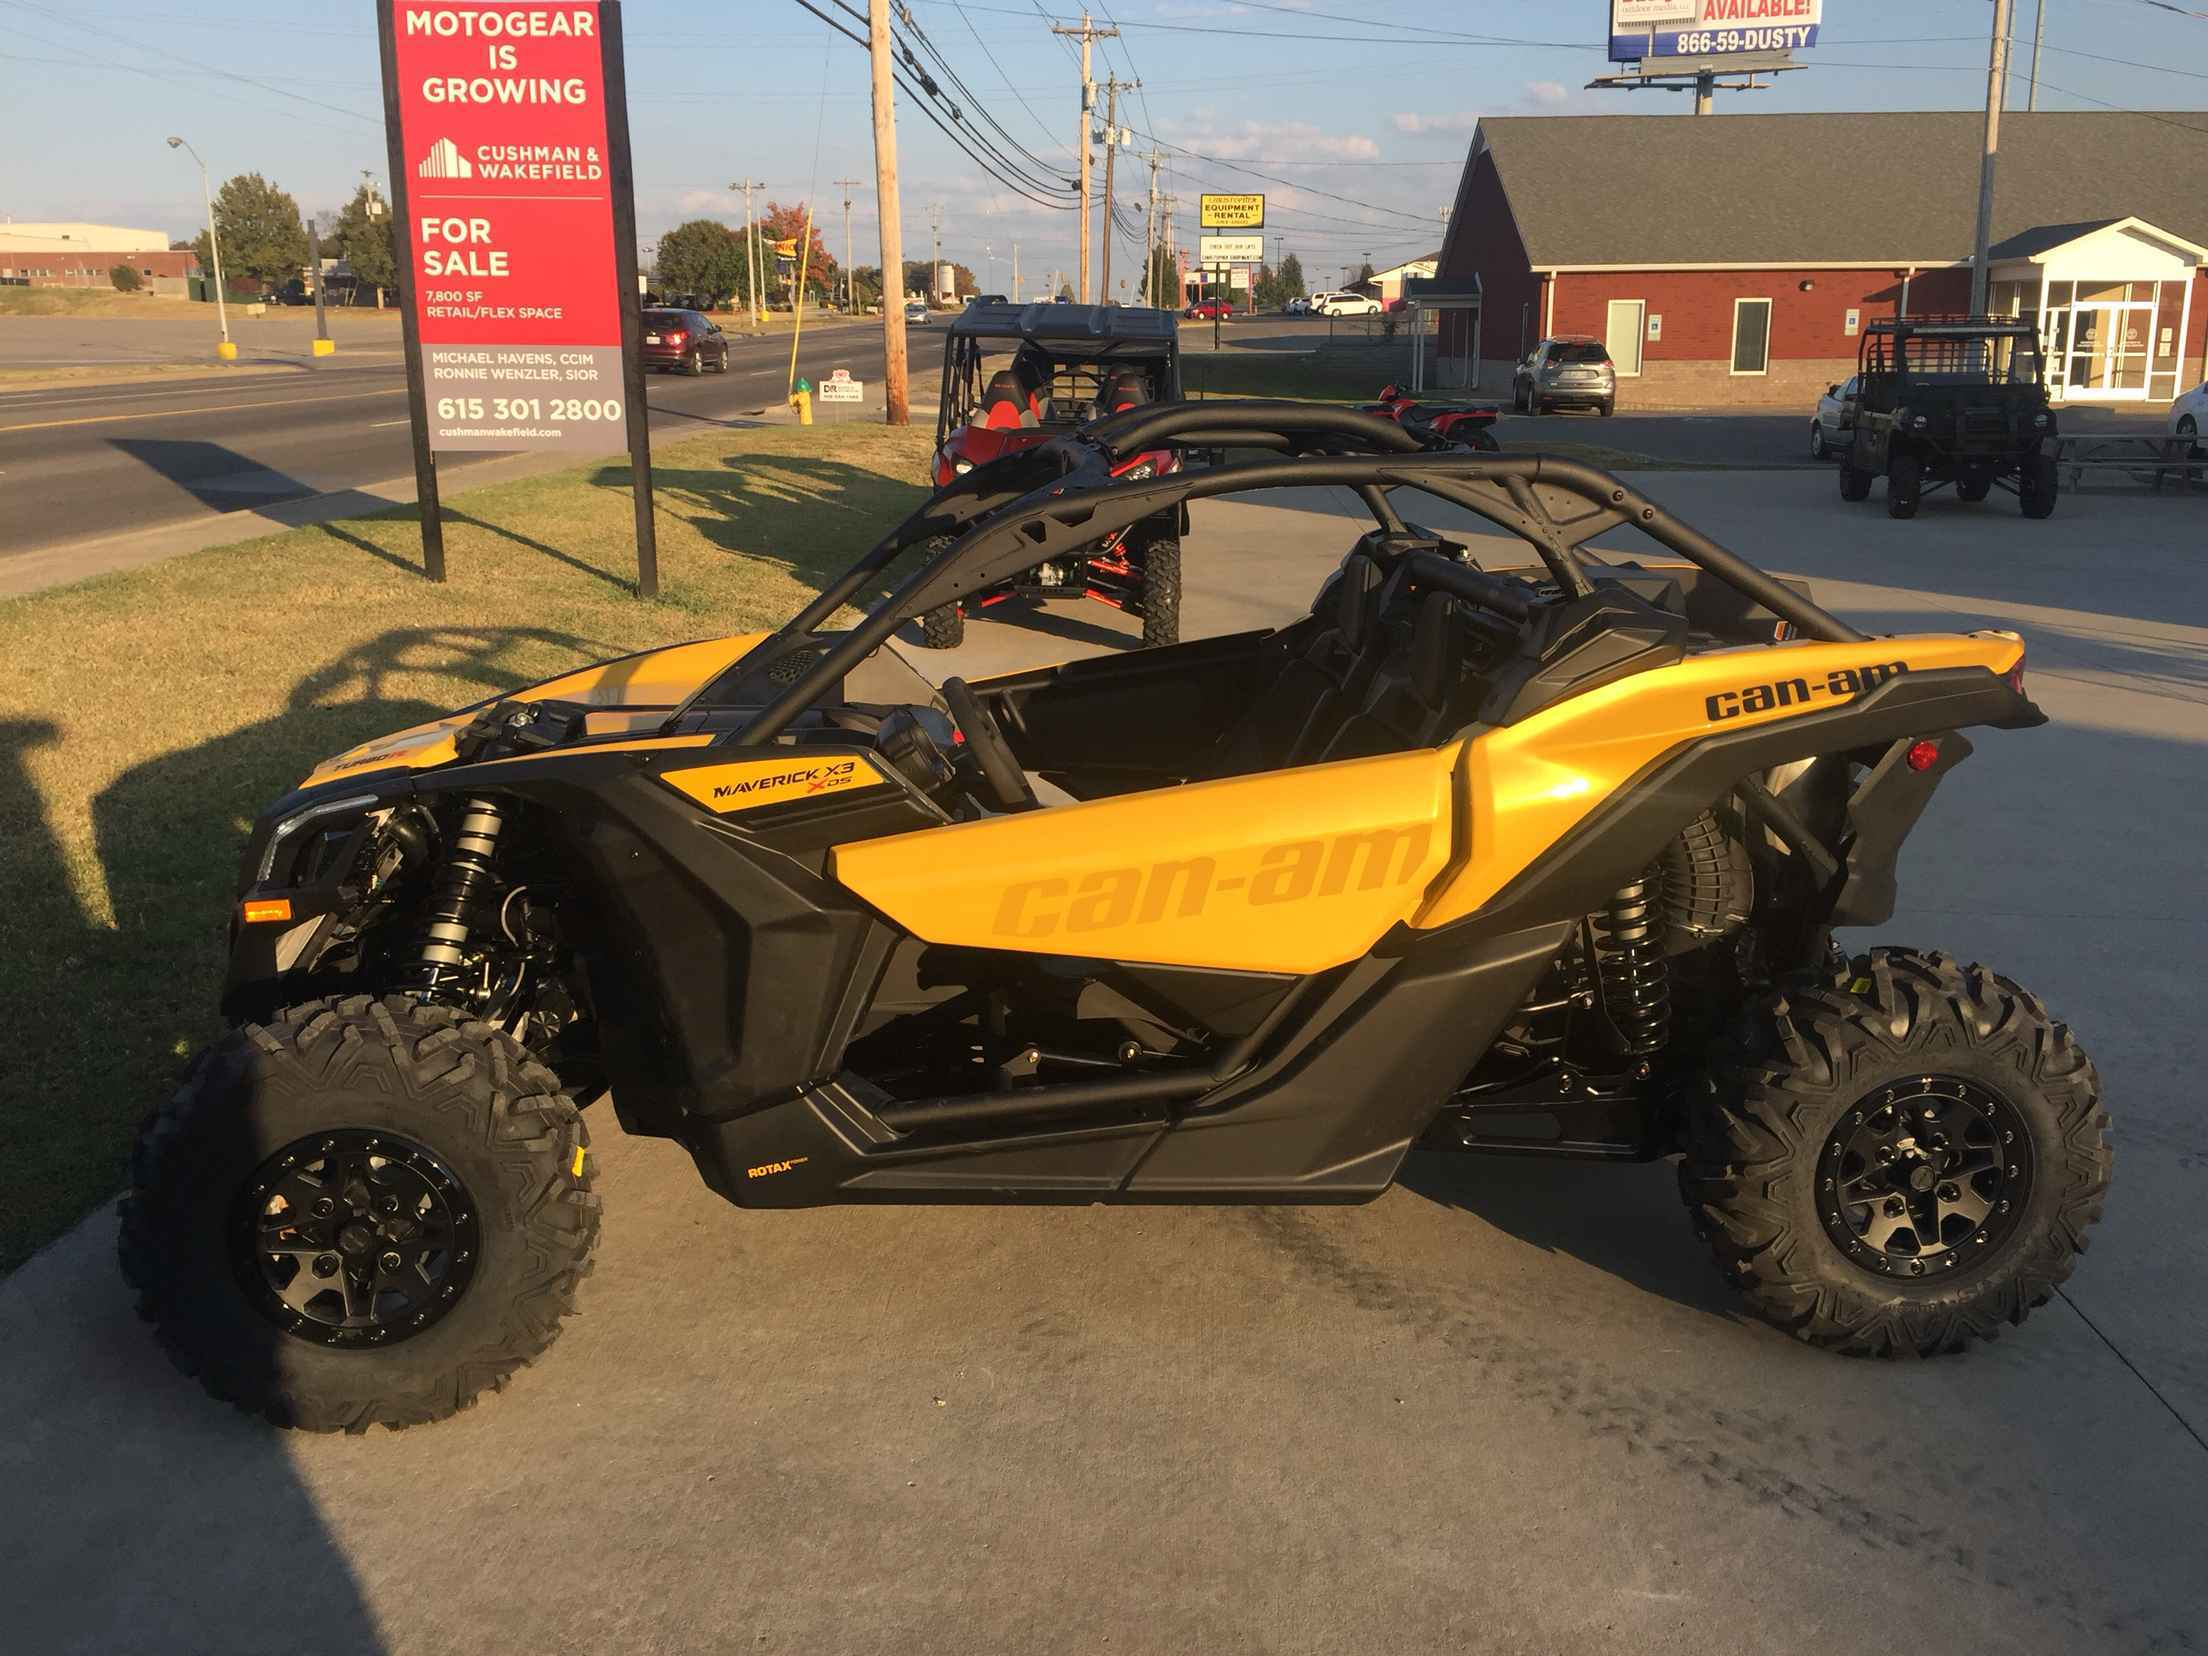 new 2017 can am maverick x3 x ds atvs for sale in tennessee on atv trades. Black Bedroom Furniture Sets. Home Design Ideas